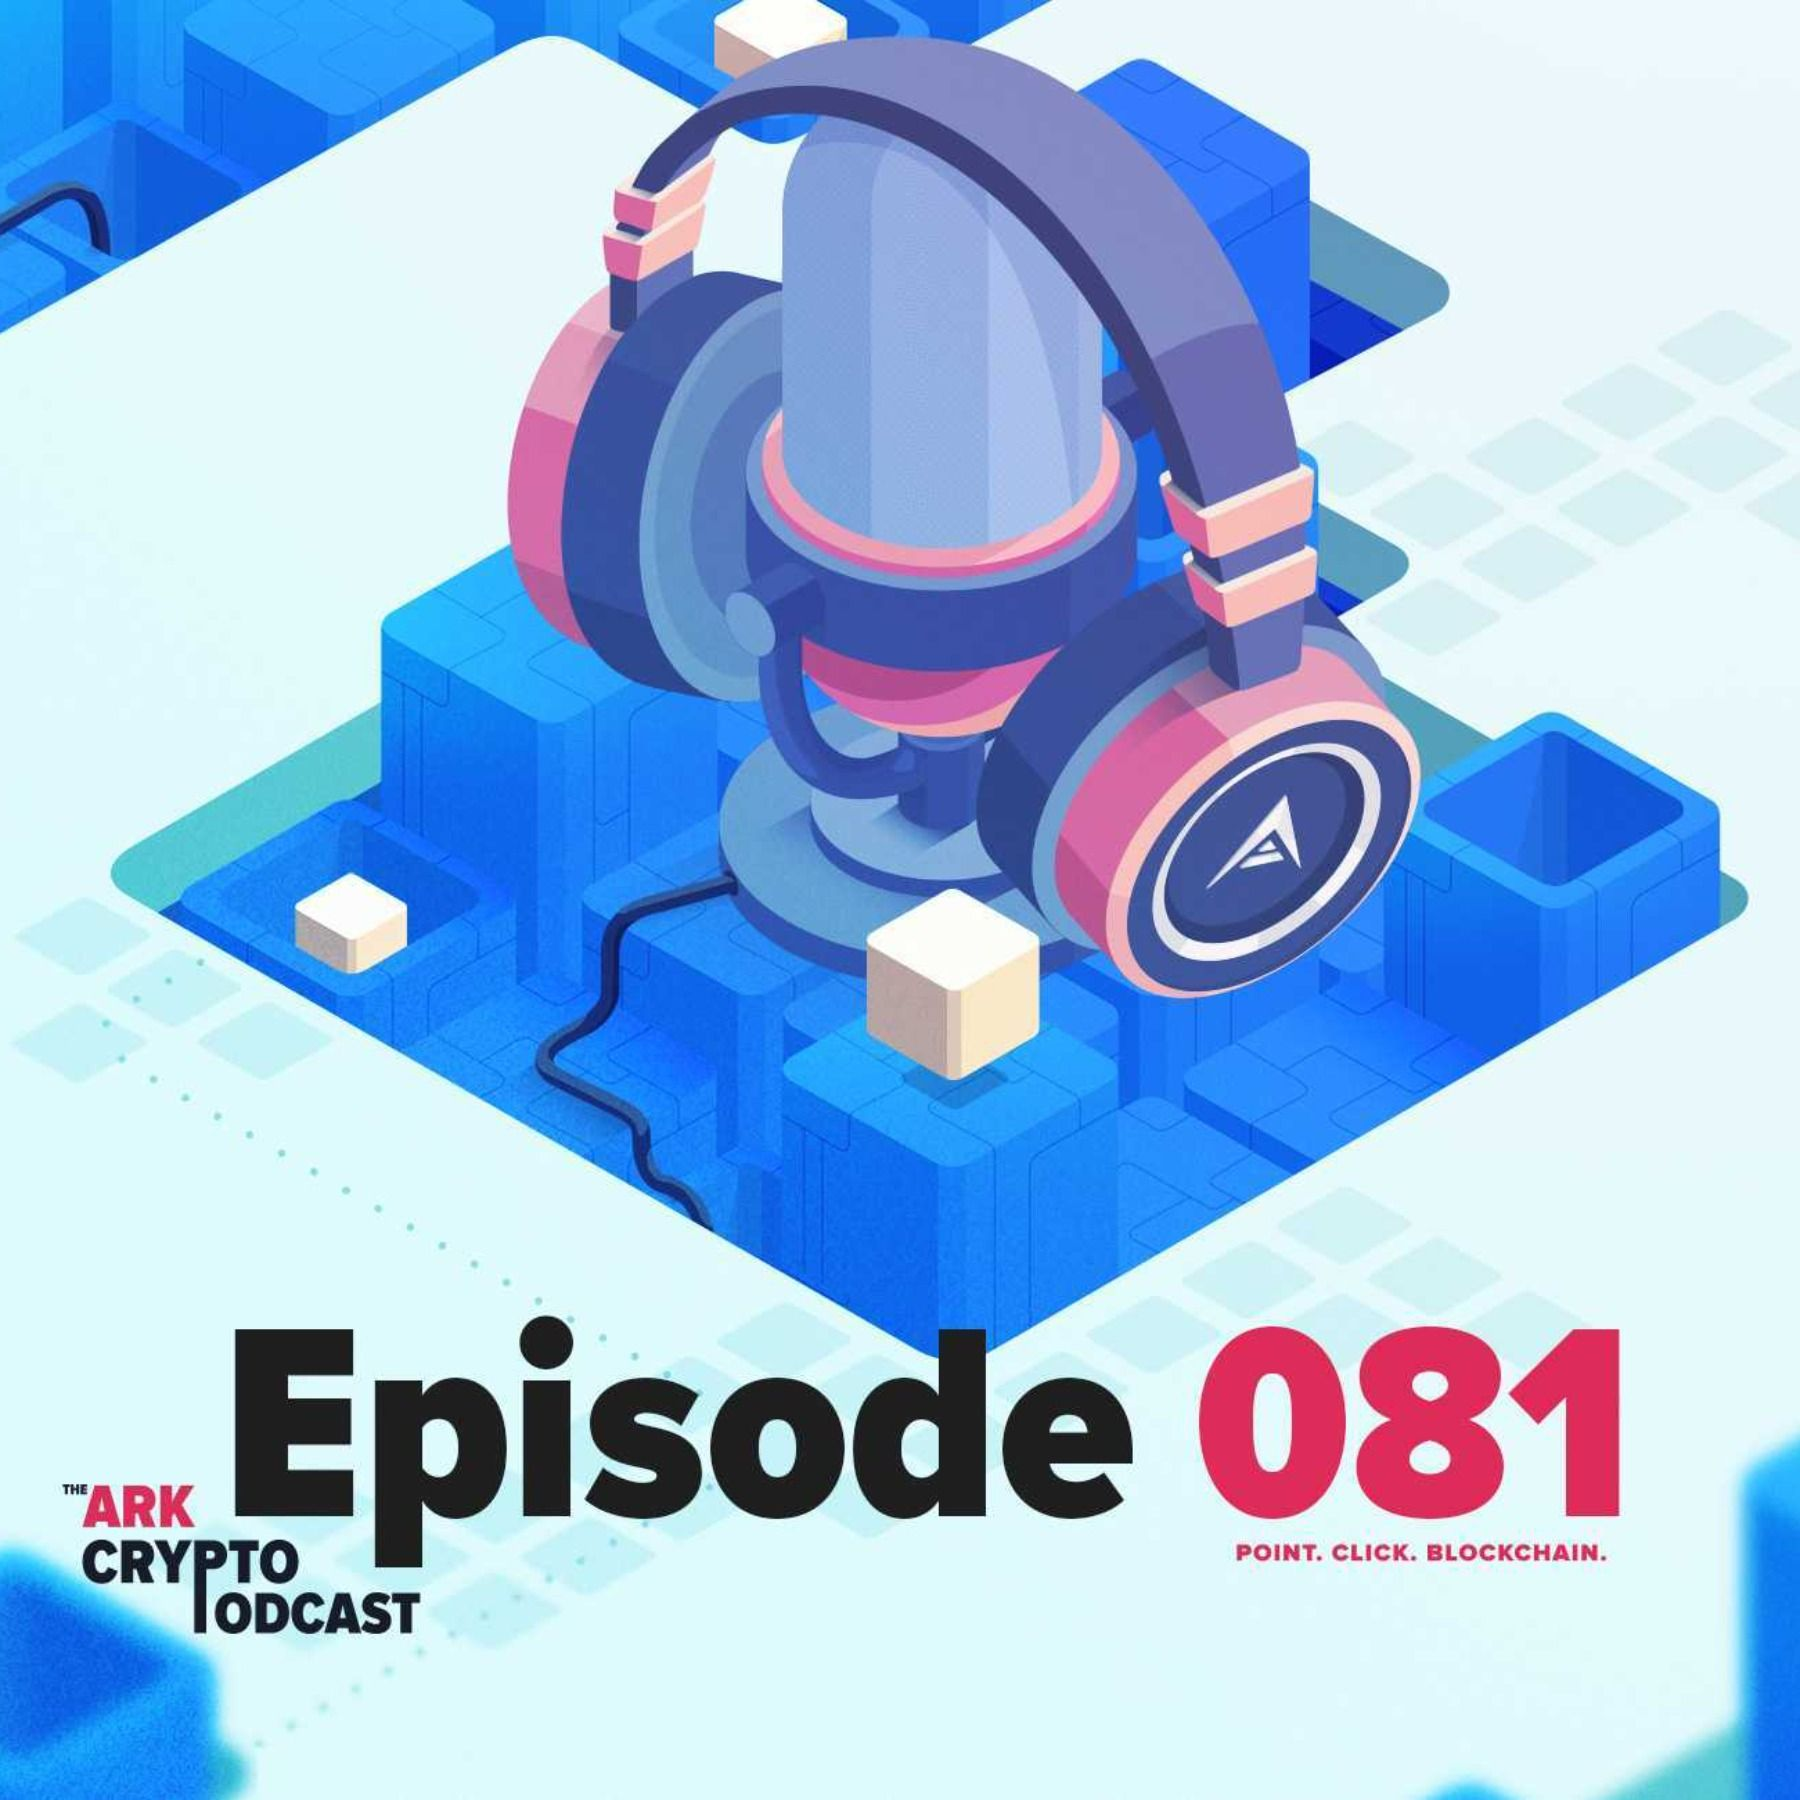 ARK Crypto Podcast #081 - Protokol Enterprise Solutions Soft Launch Interview (Part 2)